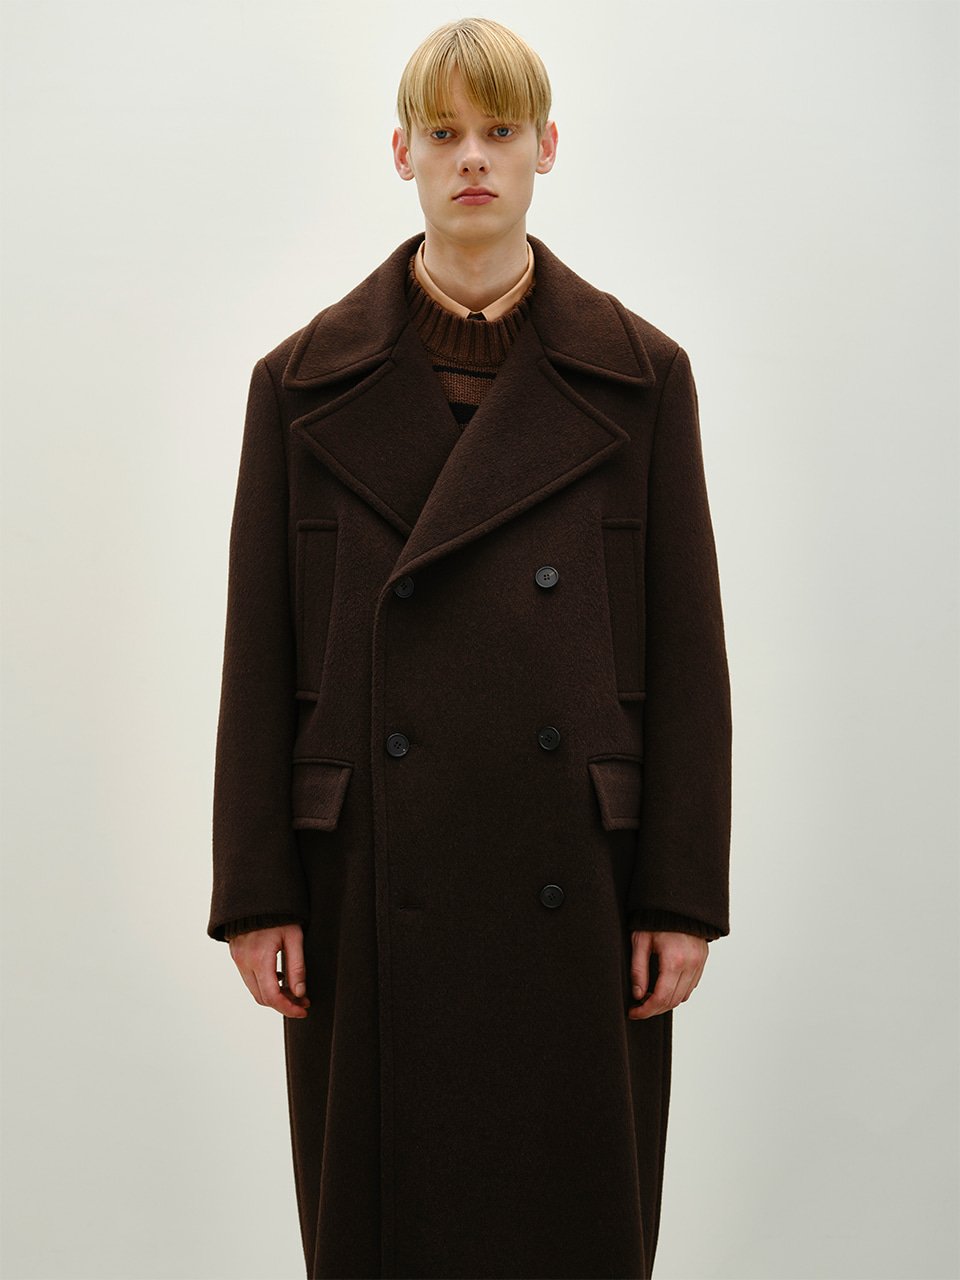 [FW20] DOUBLE CASHMERE OVER COAT(Dark Beige) IEY [FW20] DOUBLE CASHMERE OVER COAT(Dark Beige)